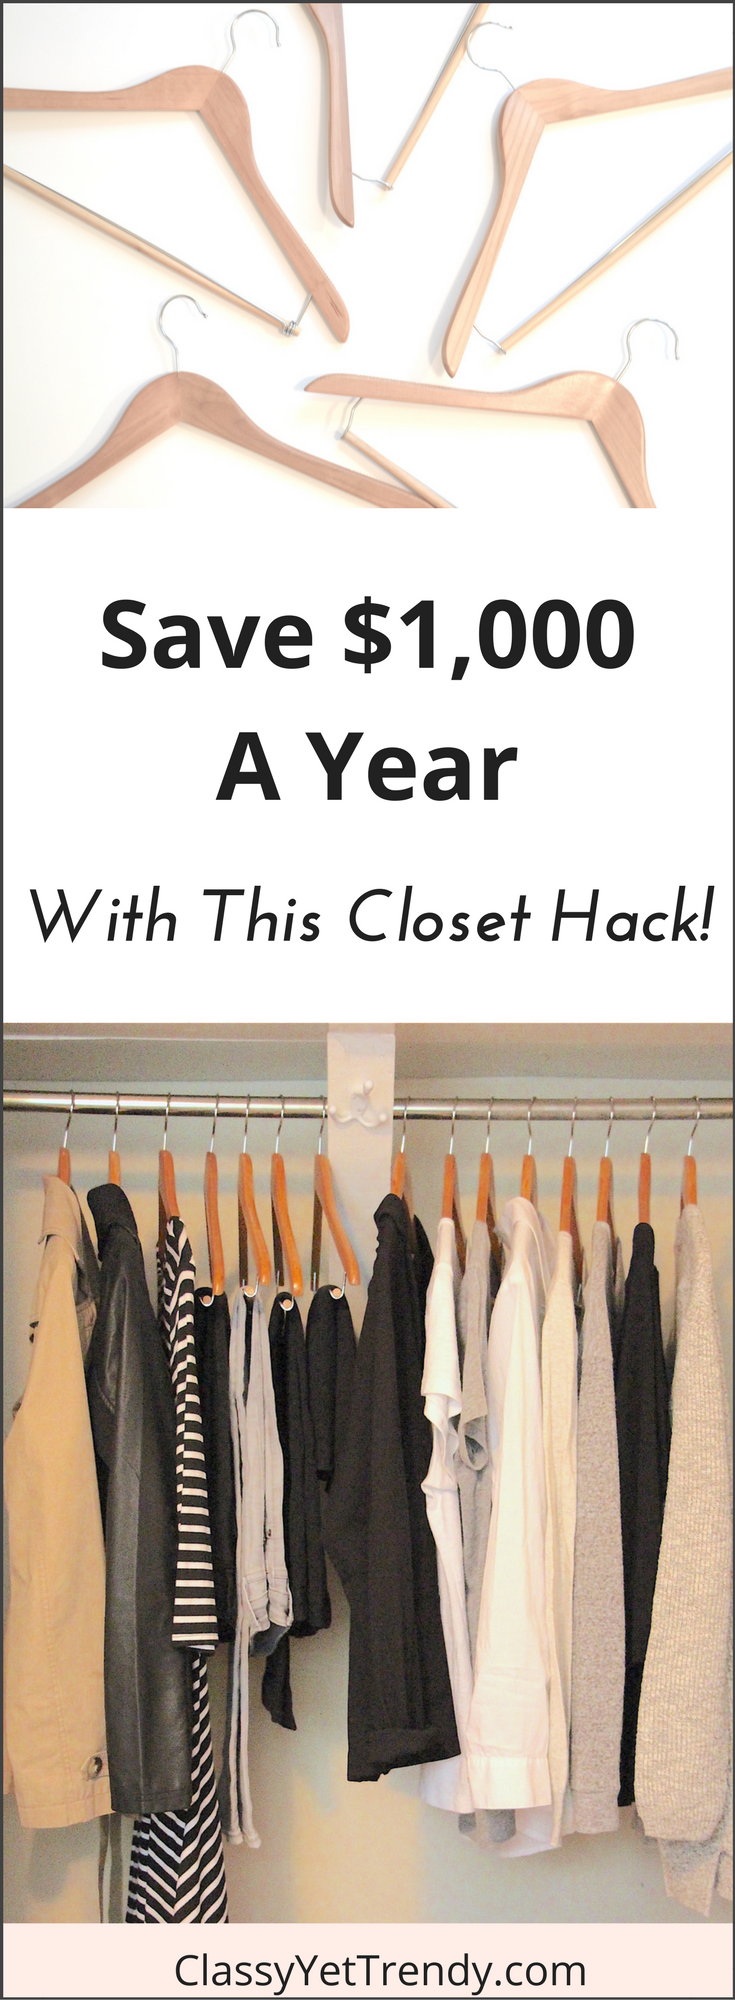 Save $1,000 a Year With This Closet Hack